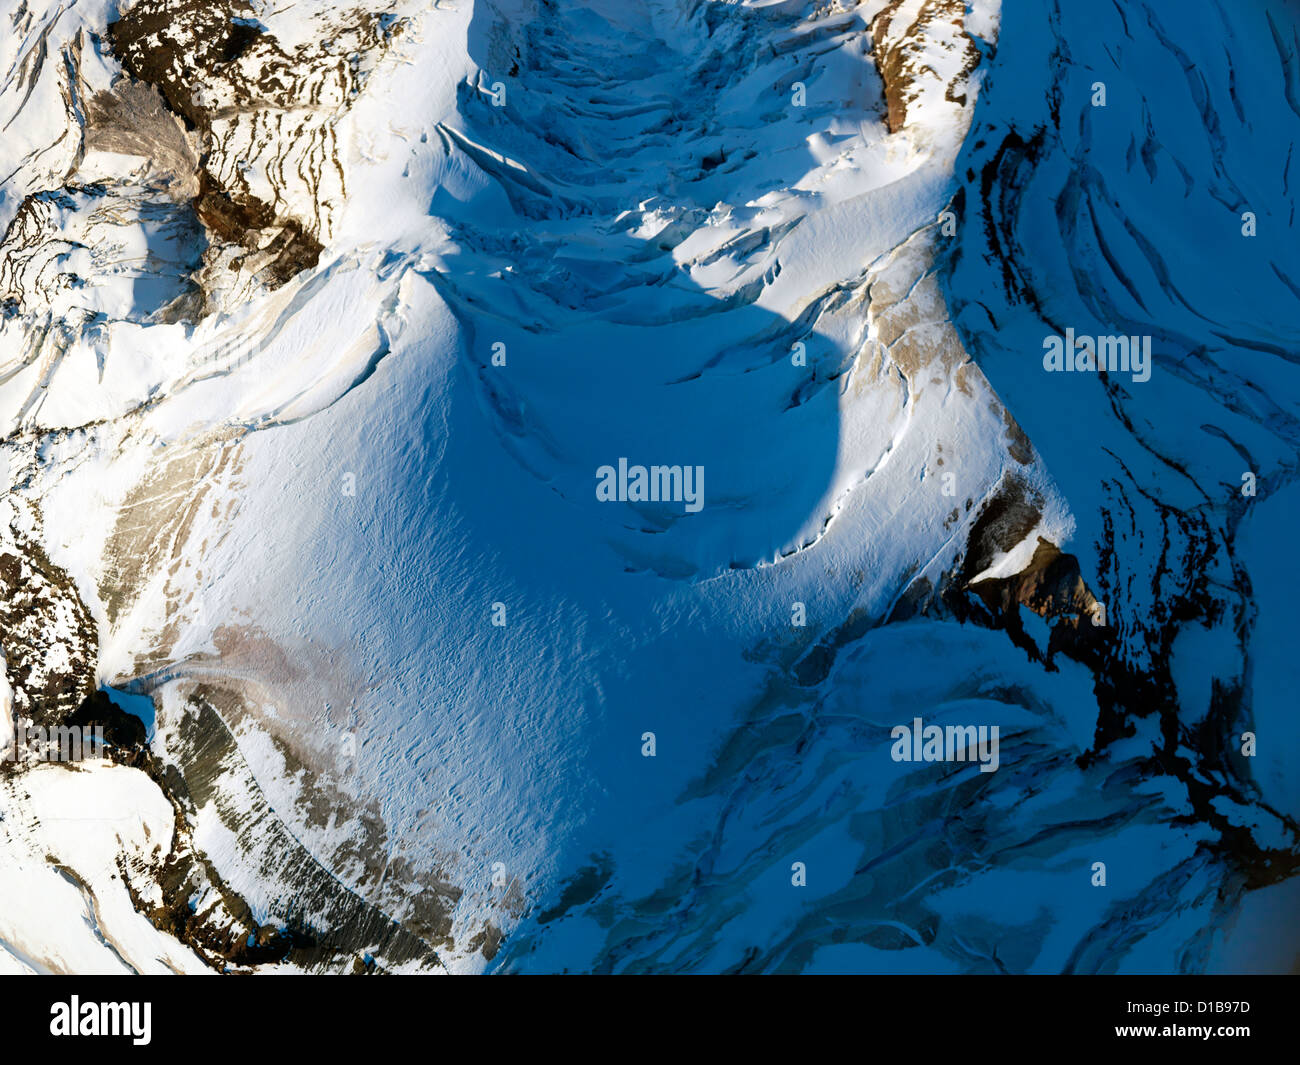 Looking down onto the very top of Mount Baker and the snow covered top of the mountain an aerial photo - Stock Image